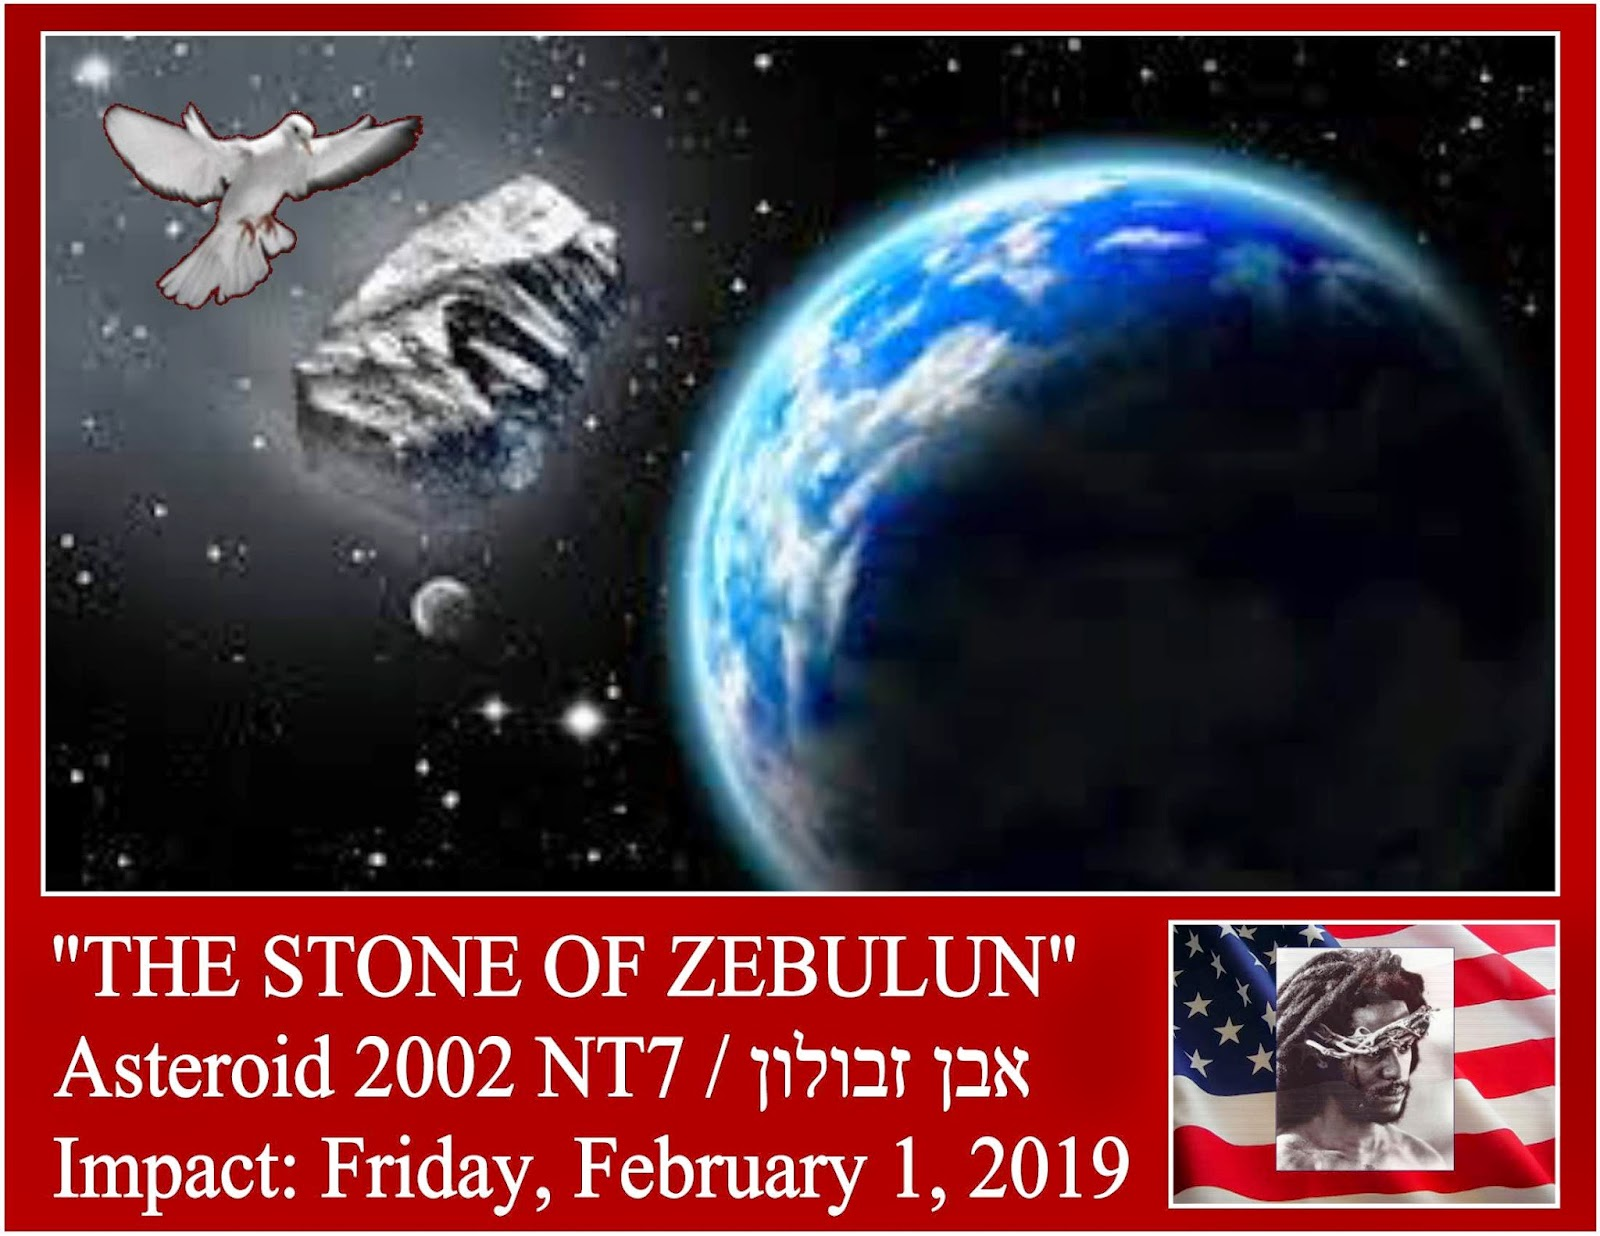 February 1, 2019 asteroid 23